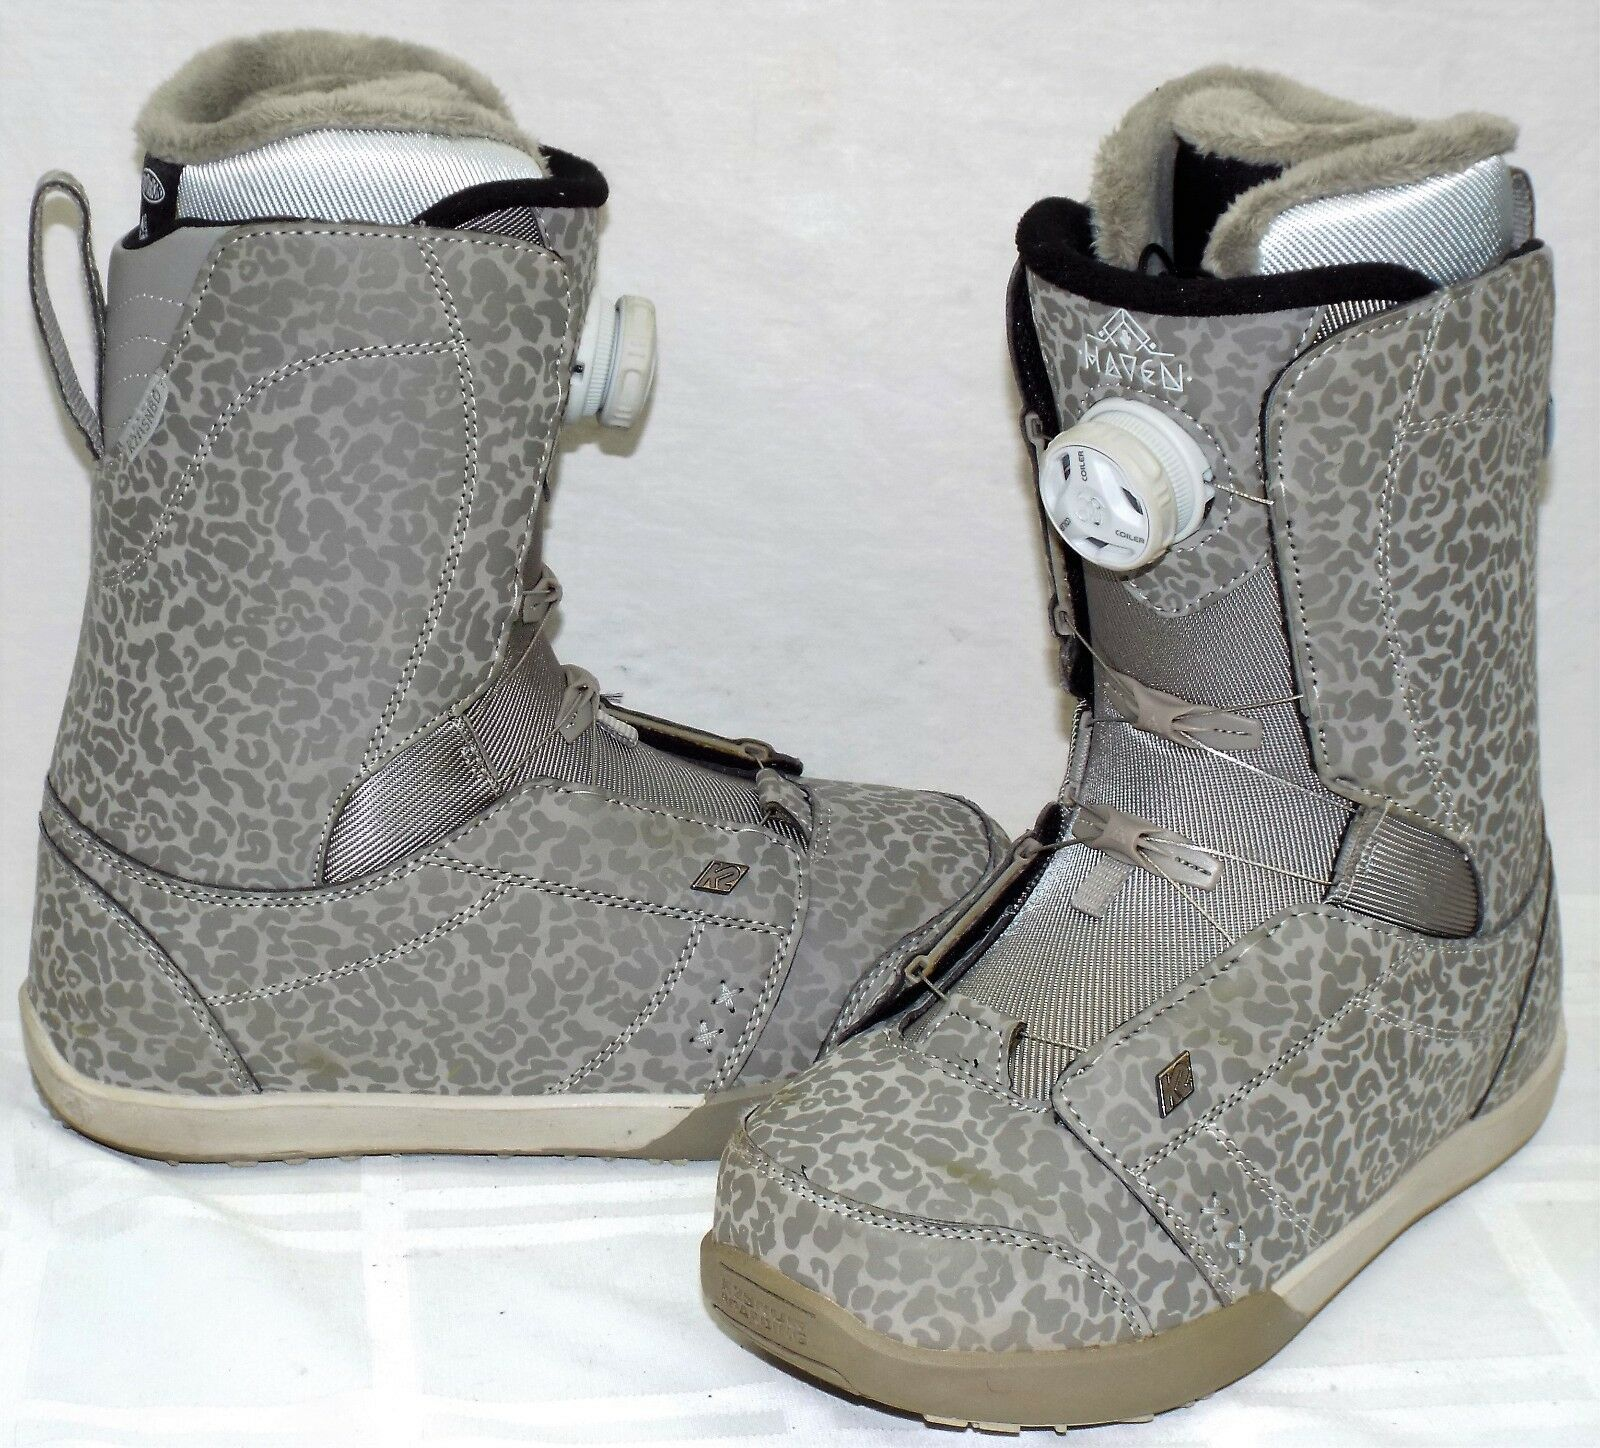 15-16 K2 Haven Boa Used Women's Snowboard Boots Size 7